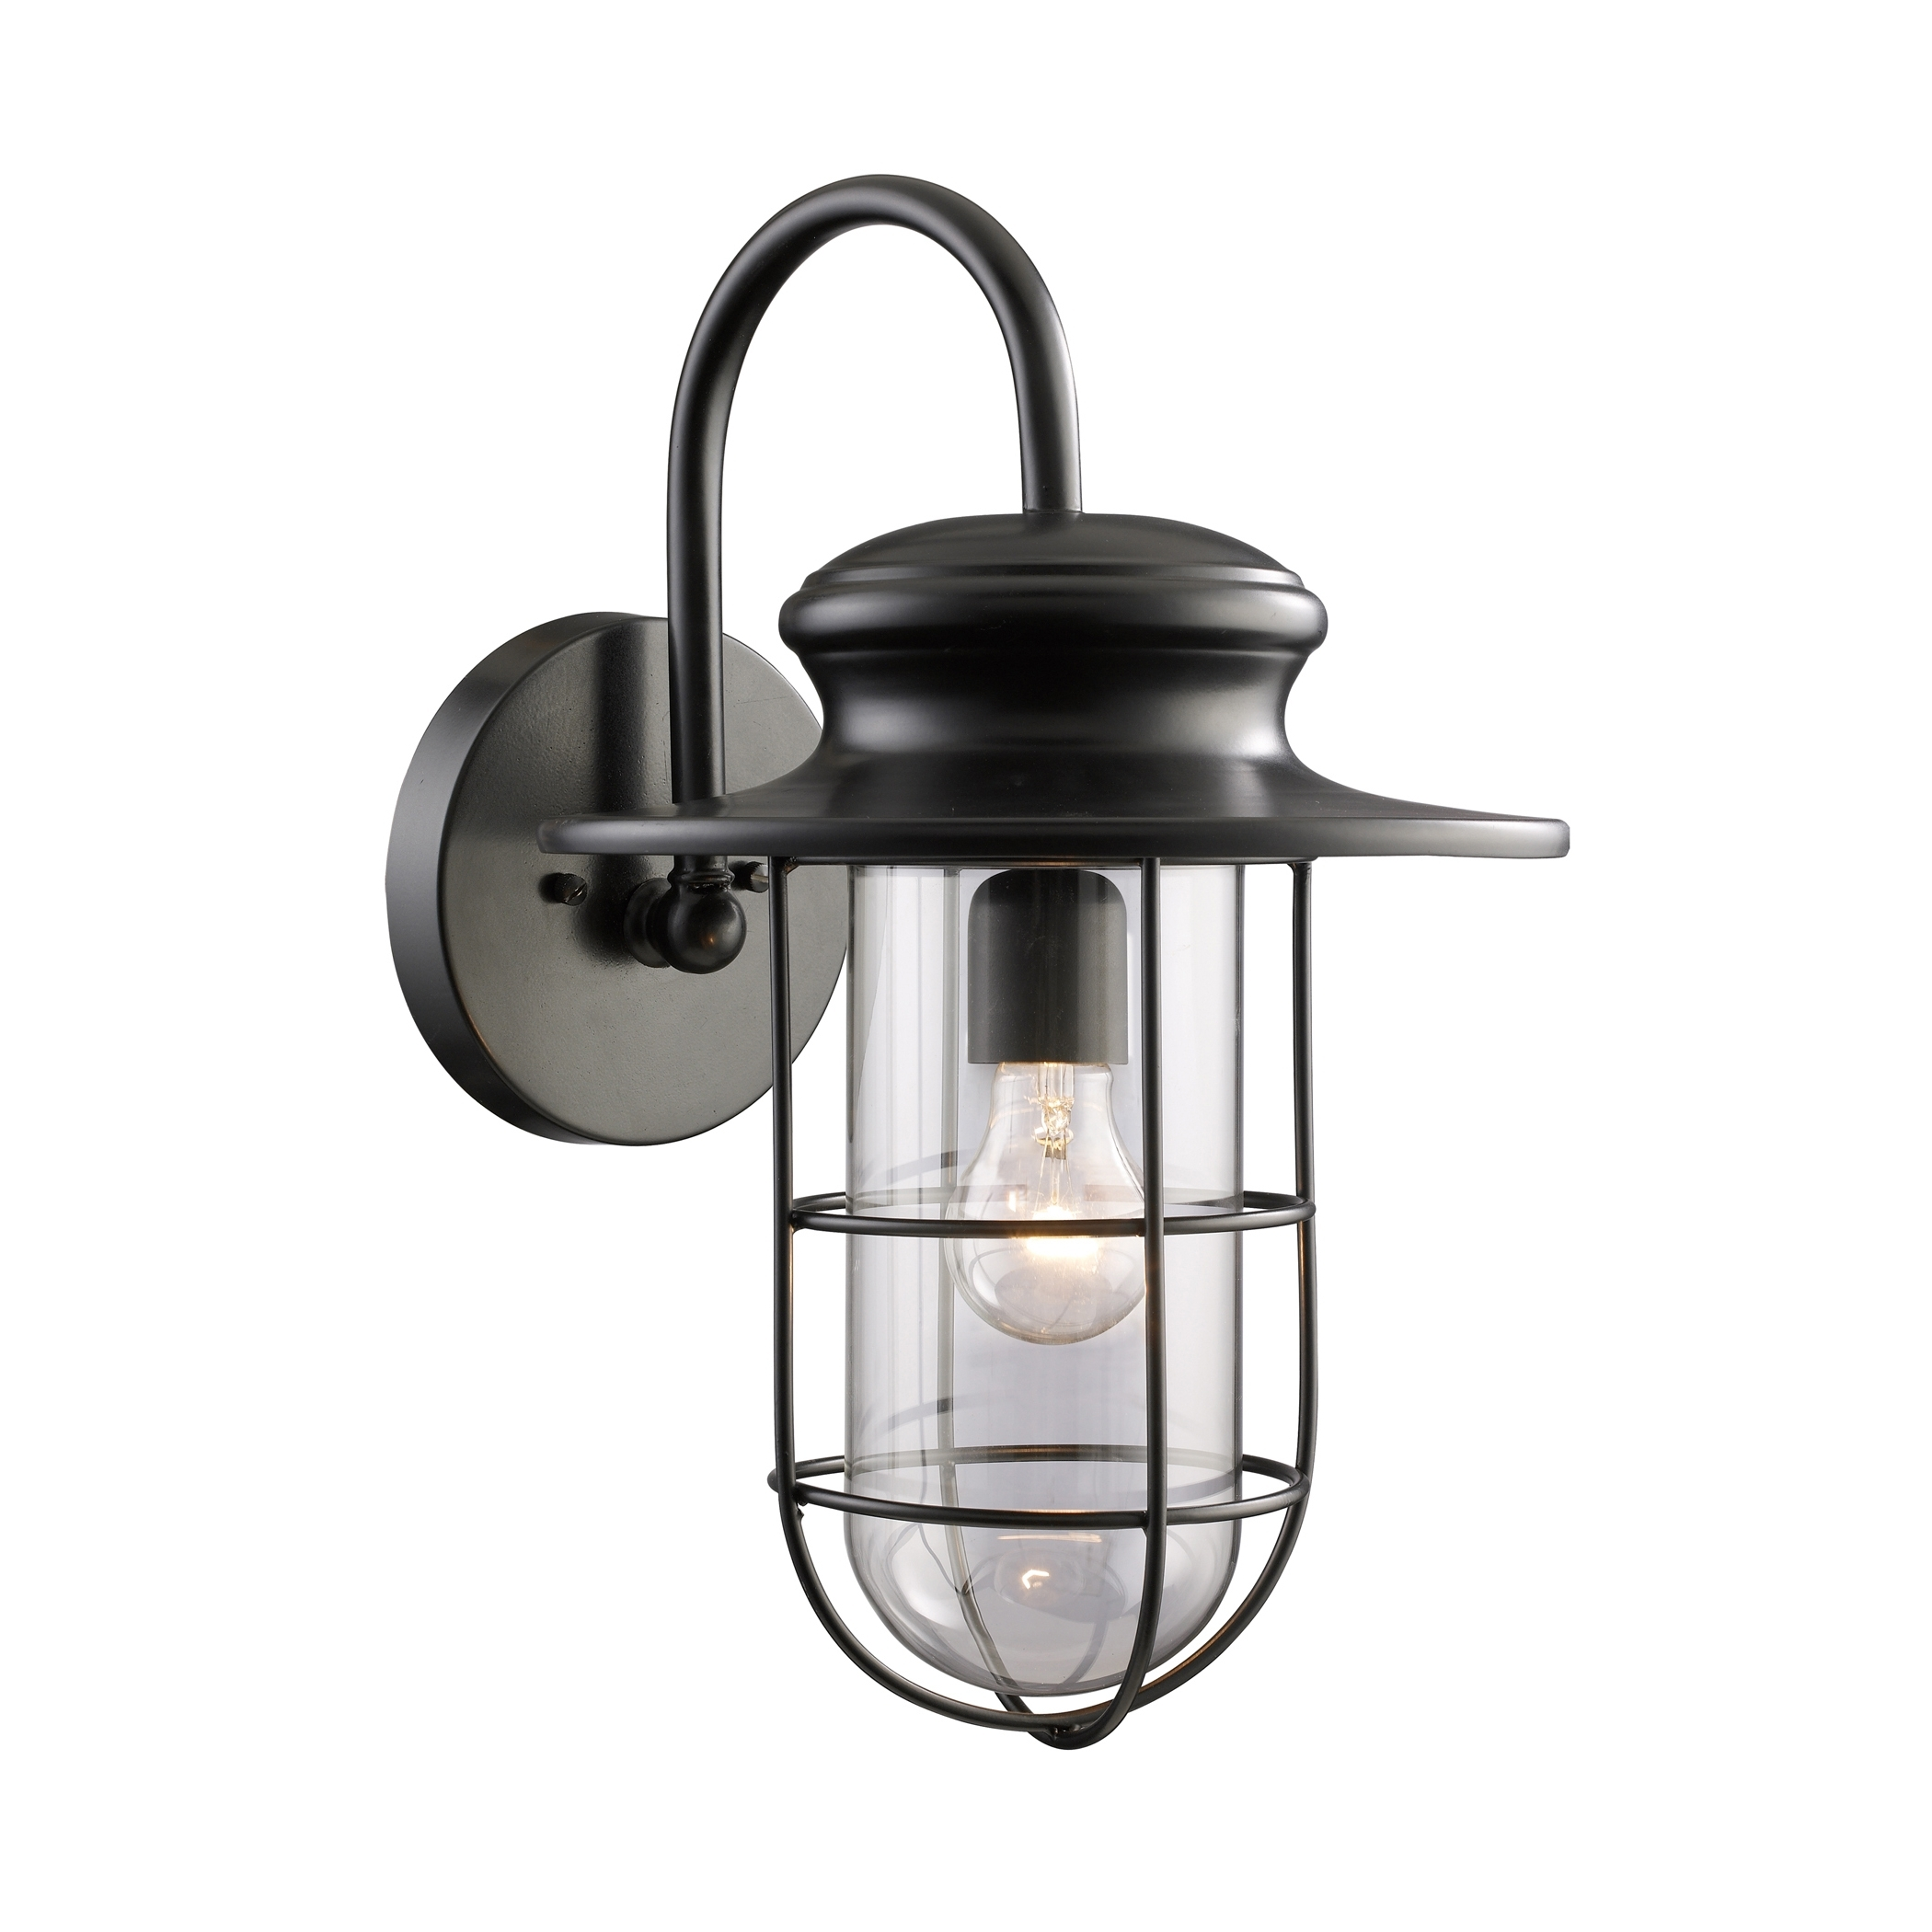 Outdoor Exterior Lanterns Within Famous Exterior Industrial Light Outdoor Fixture Lighting Uk Wall Mount (View 15 of 20)